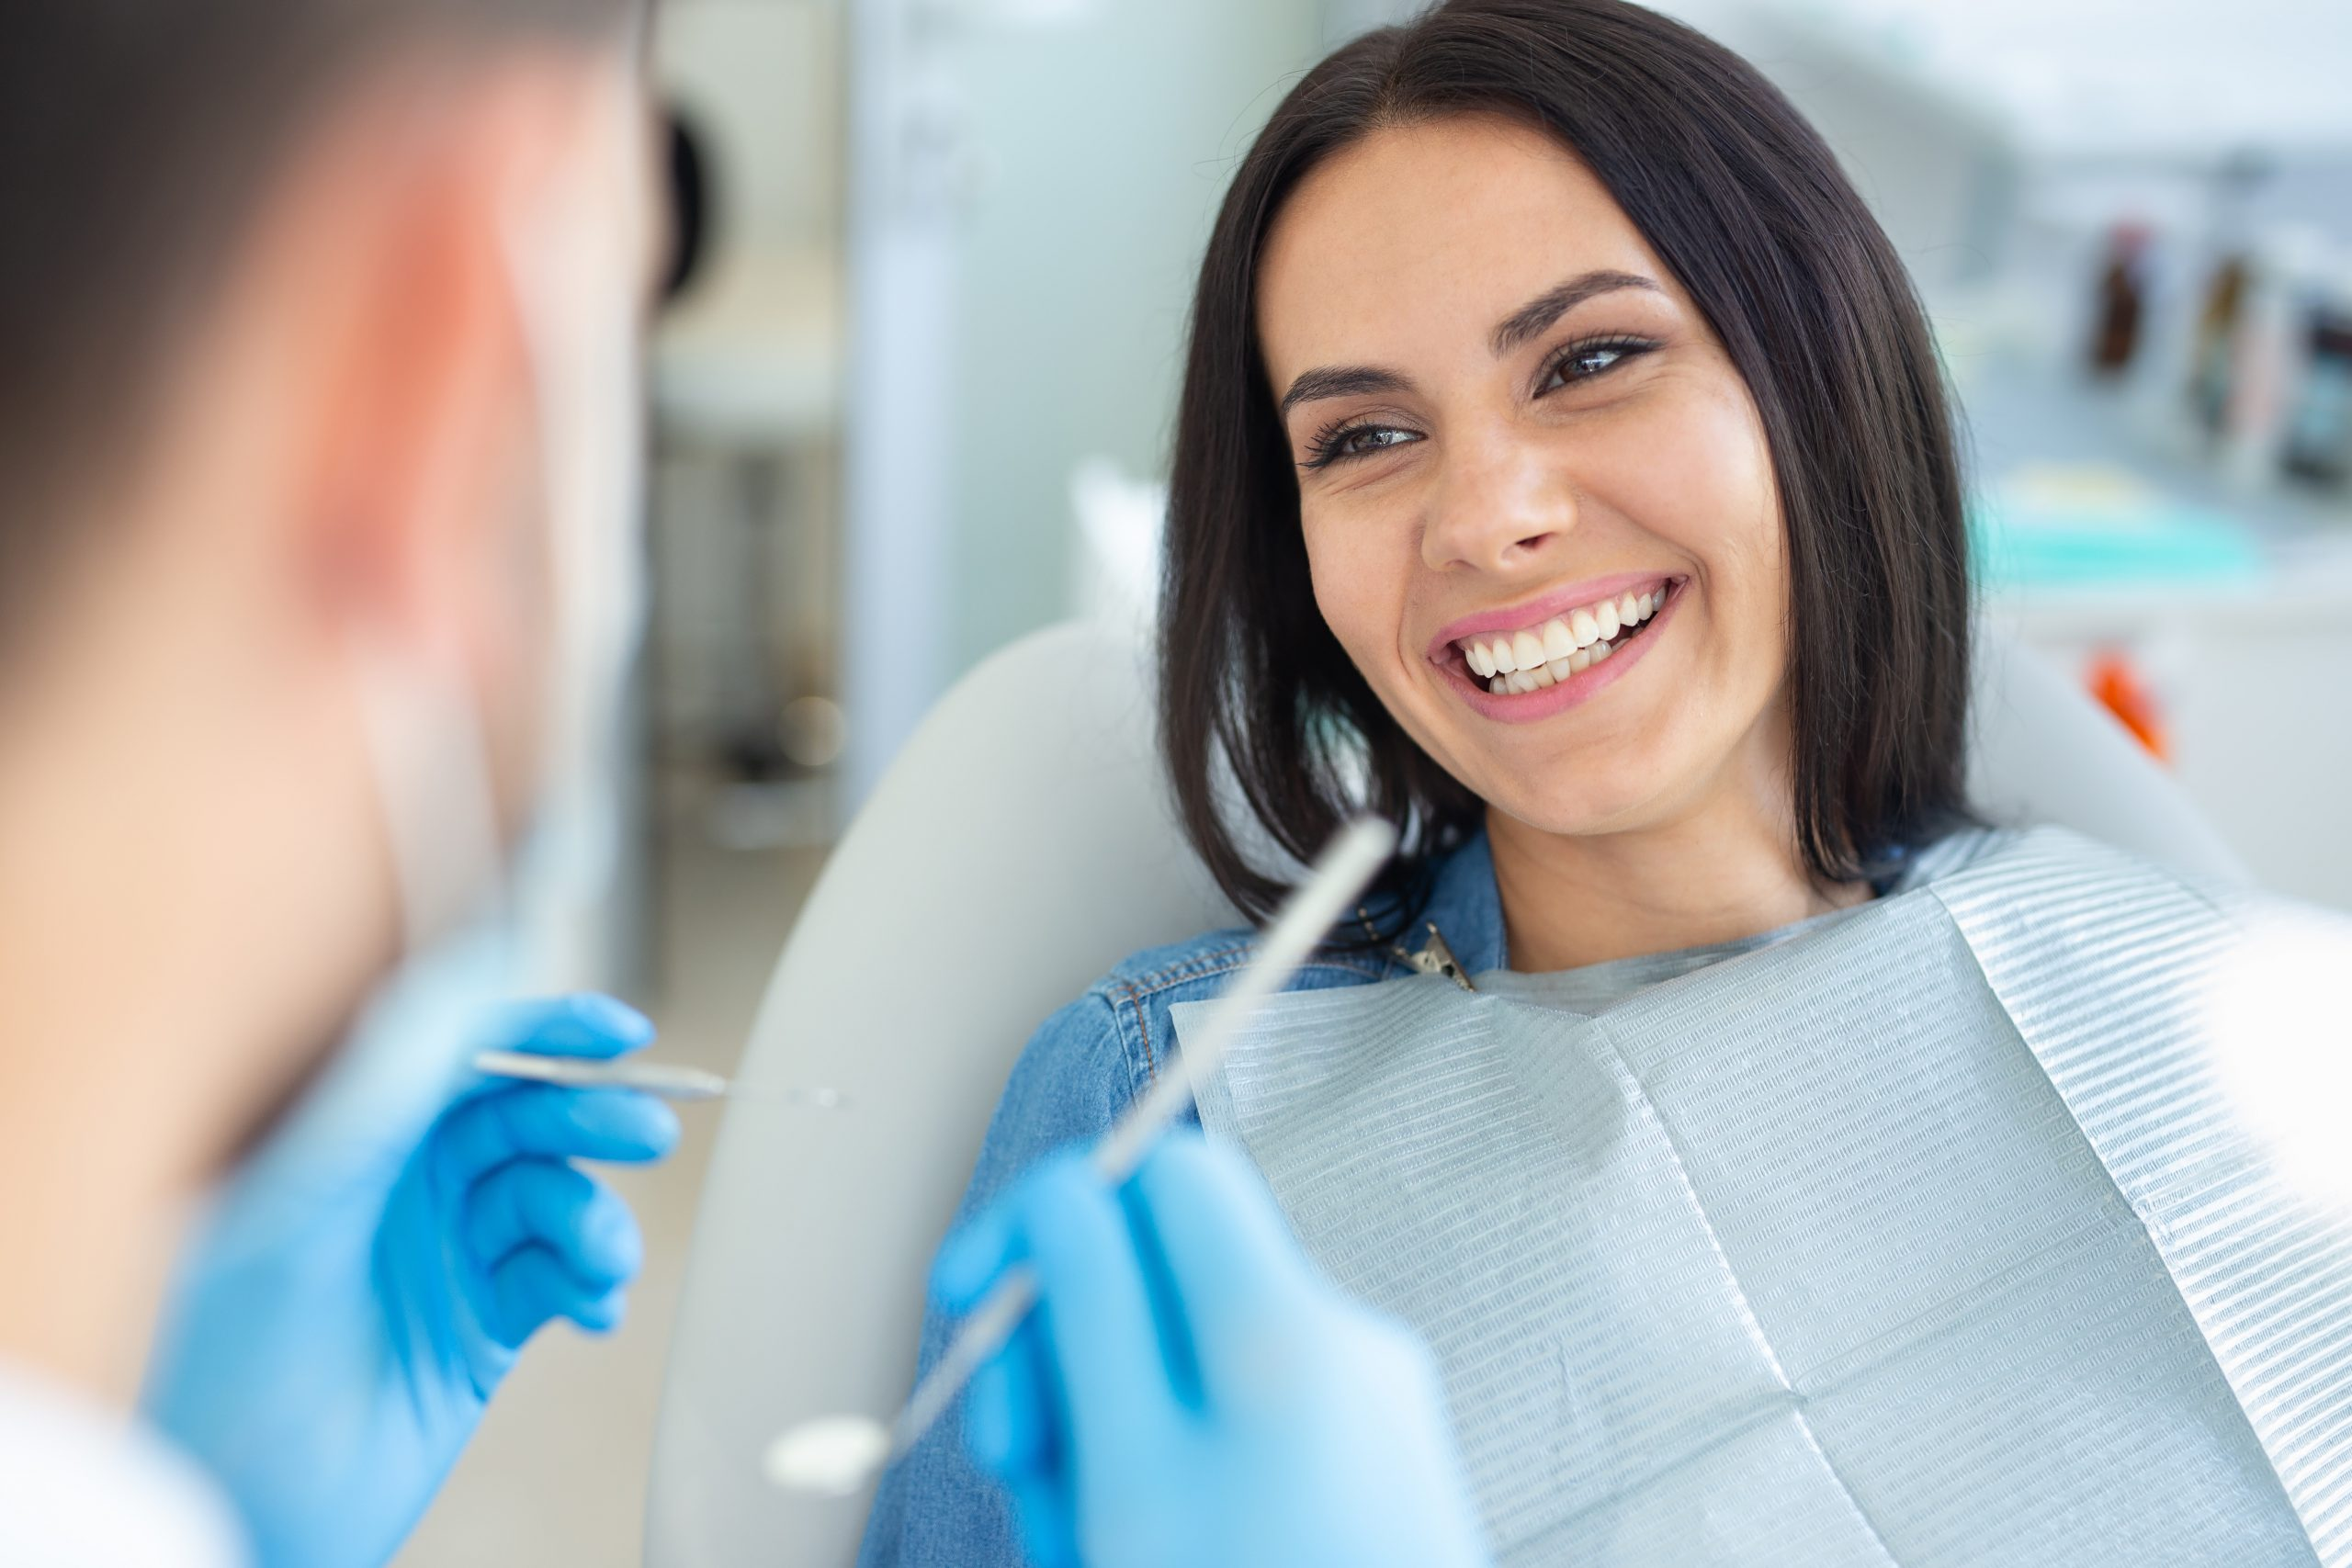 Teeth Cleanings at Mayfaire Family Dentistry